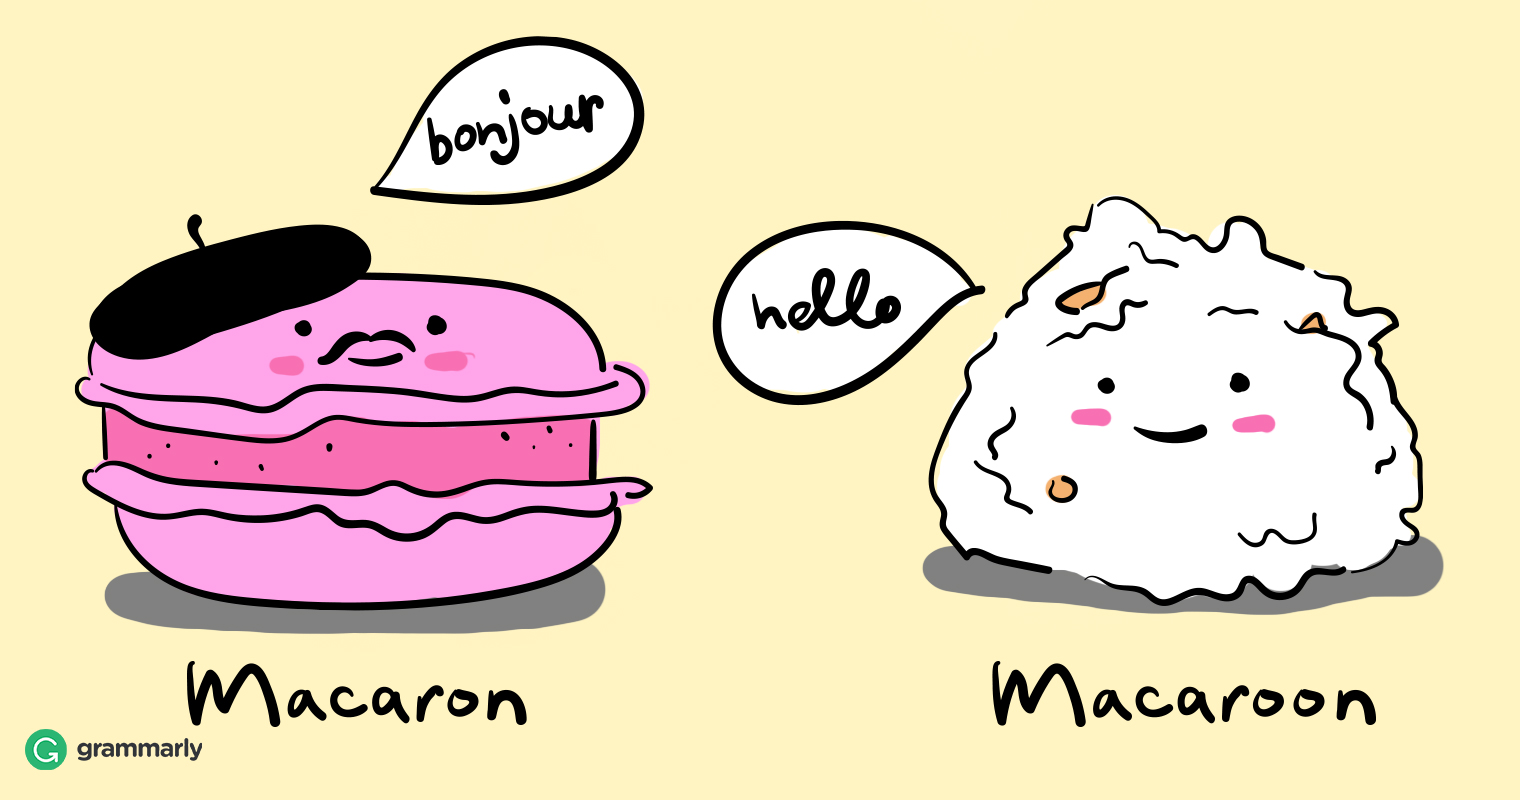 Macaron vs. Macaroon: A Discussion of Confusing Food Names image